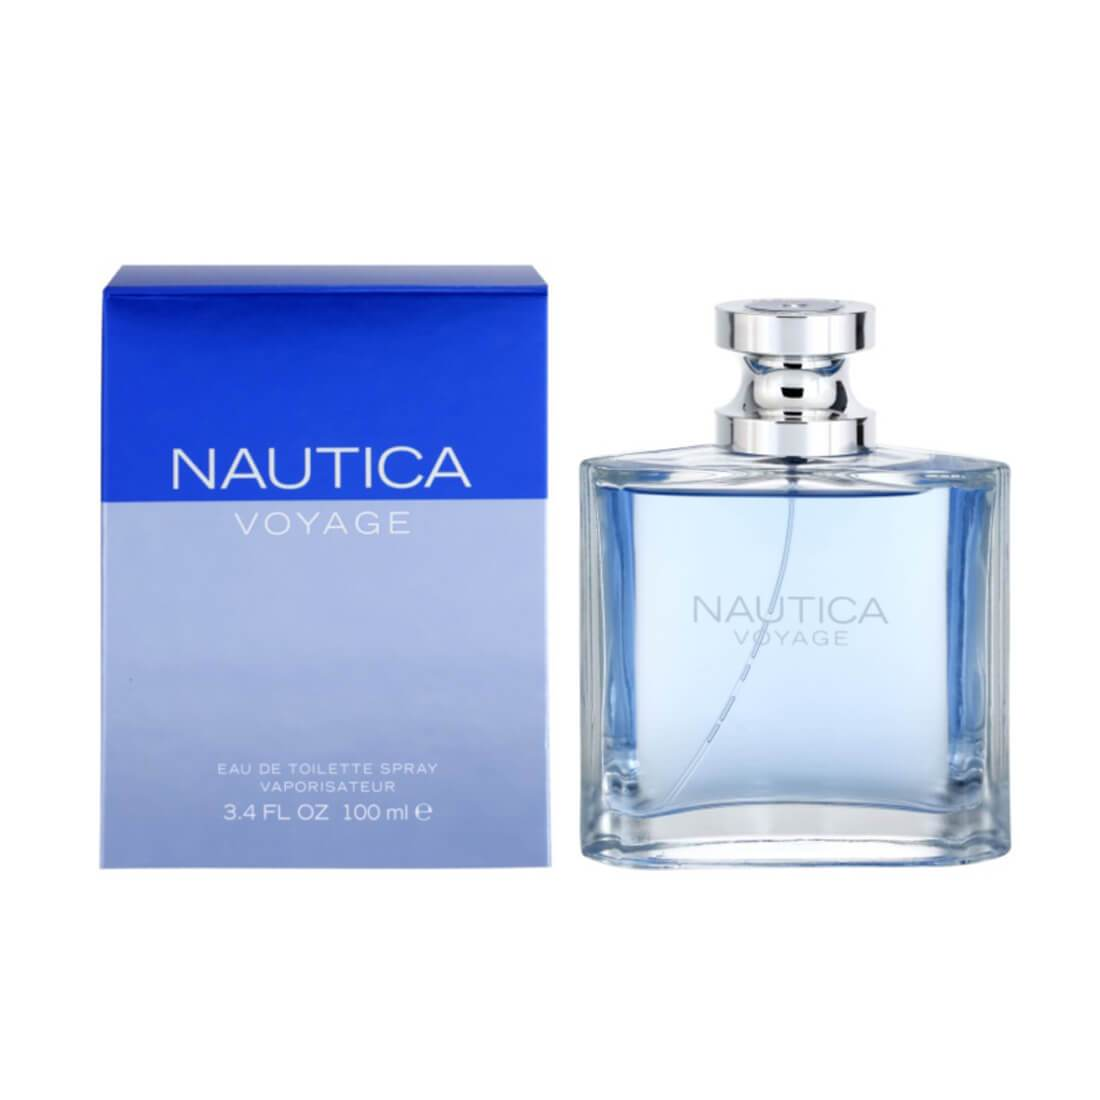 Nautica Voyage Eau De Toilette For Men - 100ml